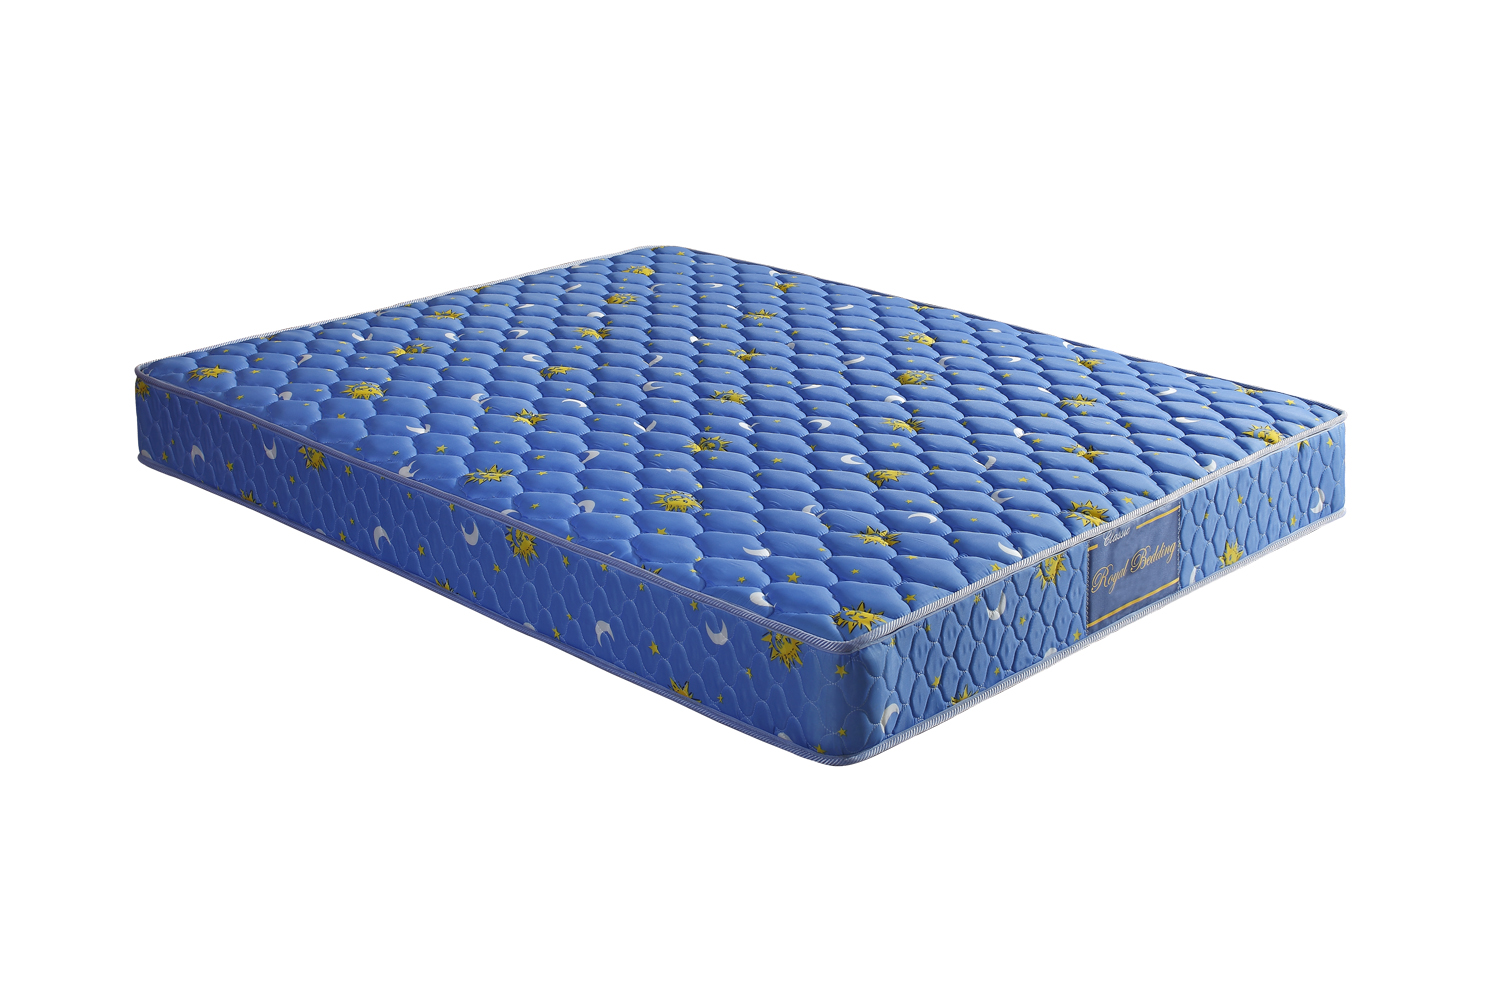 Cheap Queen Mattress For Sale Chiro Deluxe Mattress Best Home Furniture References Fo Who